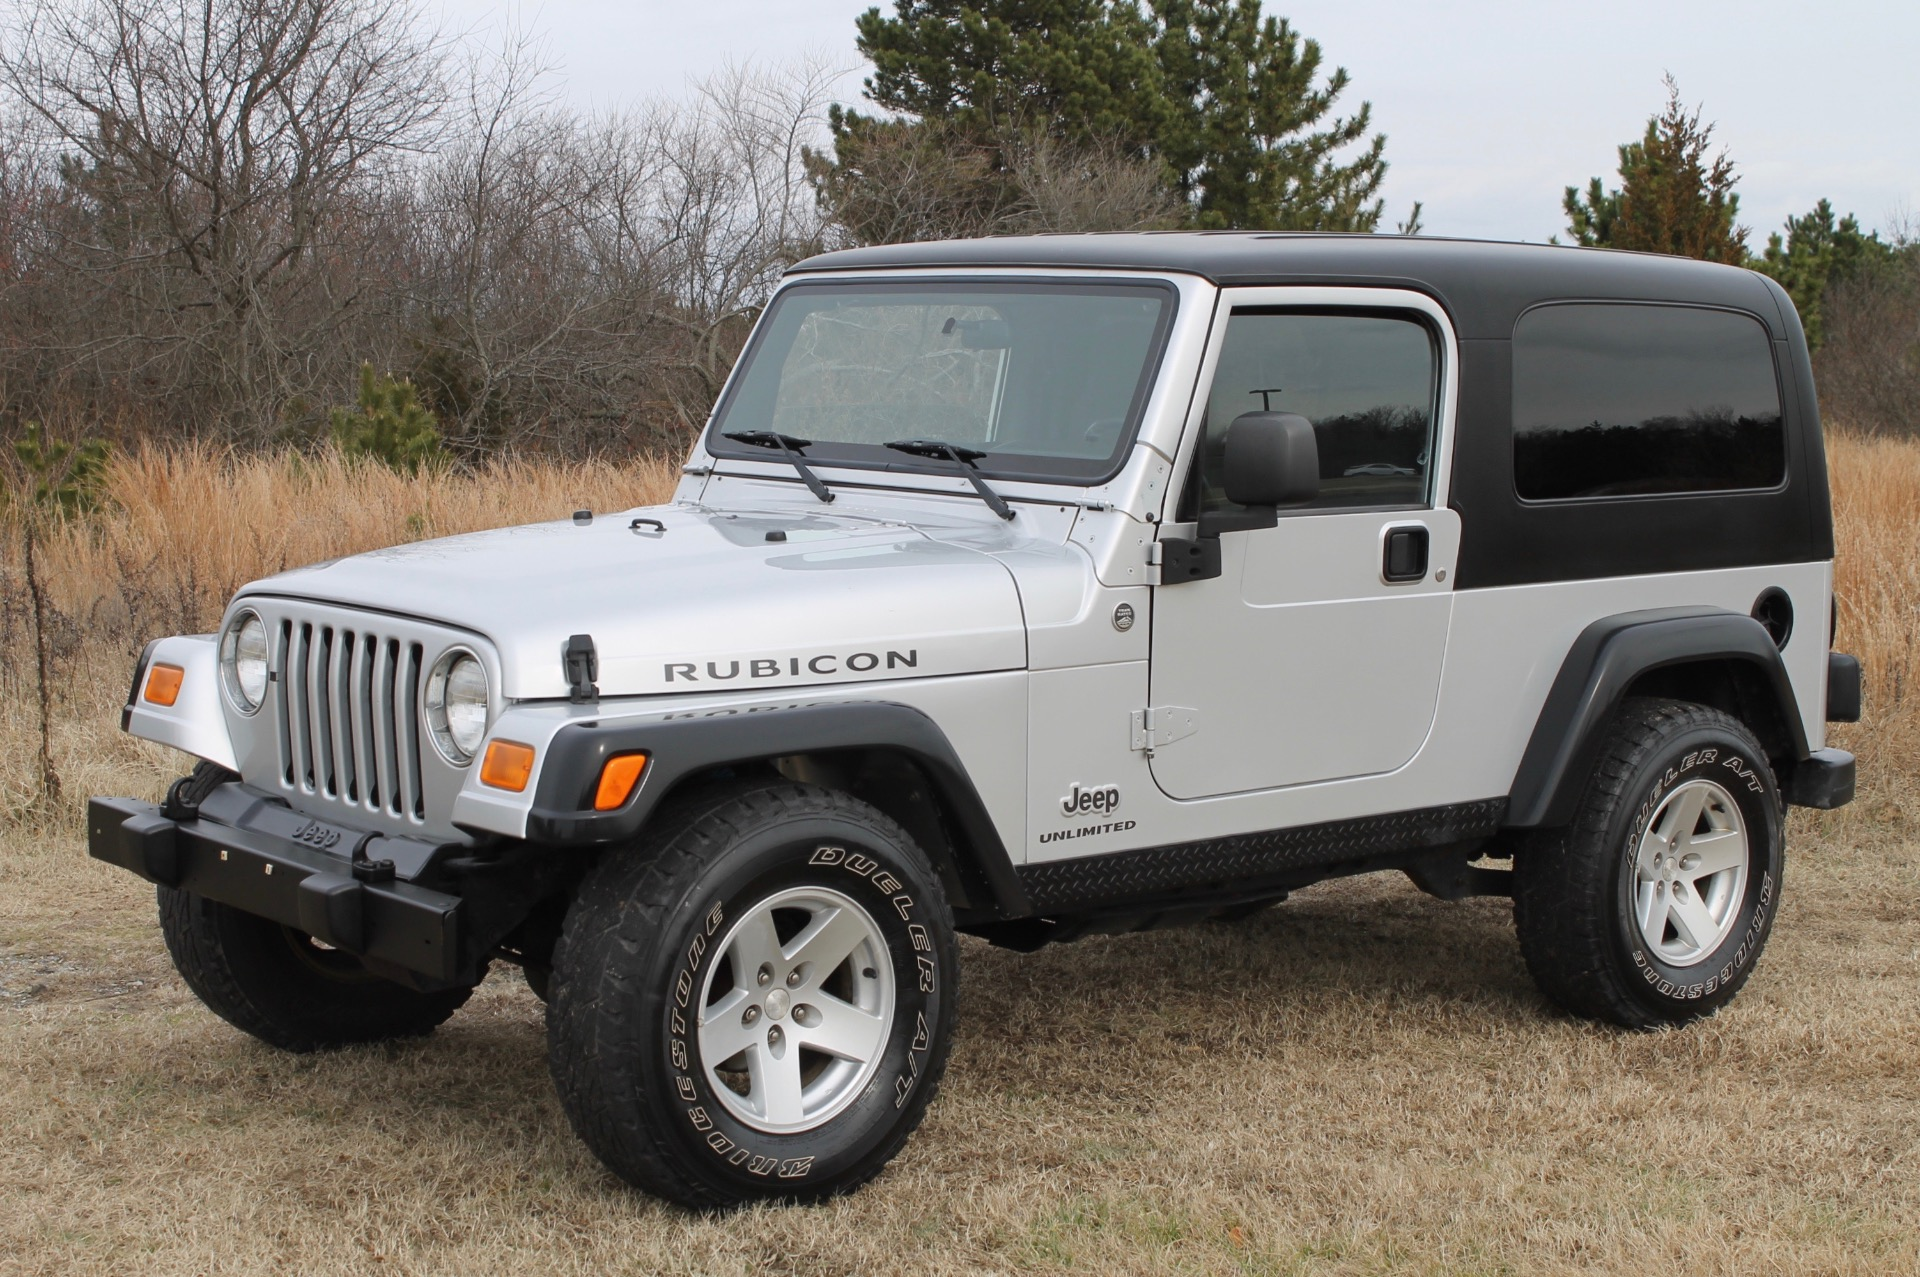 Jeep Lj For Sale >> Used 2006 Jeep Wrangler Unlimited Rubicon For Sale 17 900